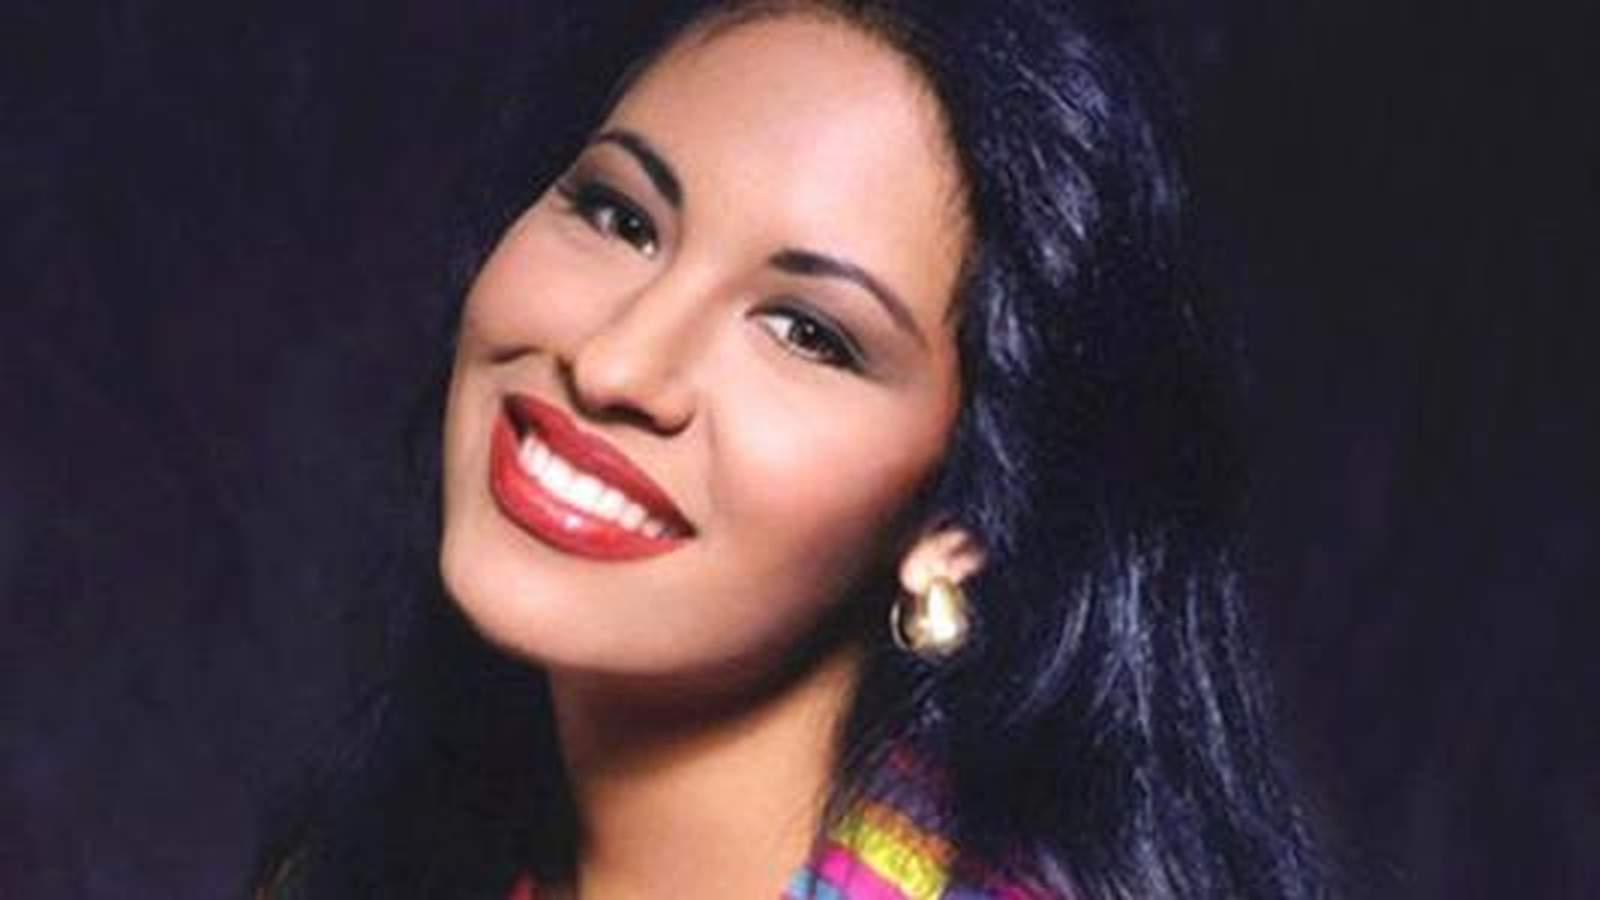 LIVE: San Antonio city leaders, Q Productions announce upcoming event honoring Selena